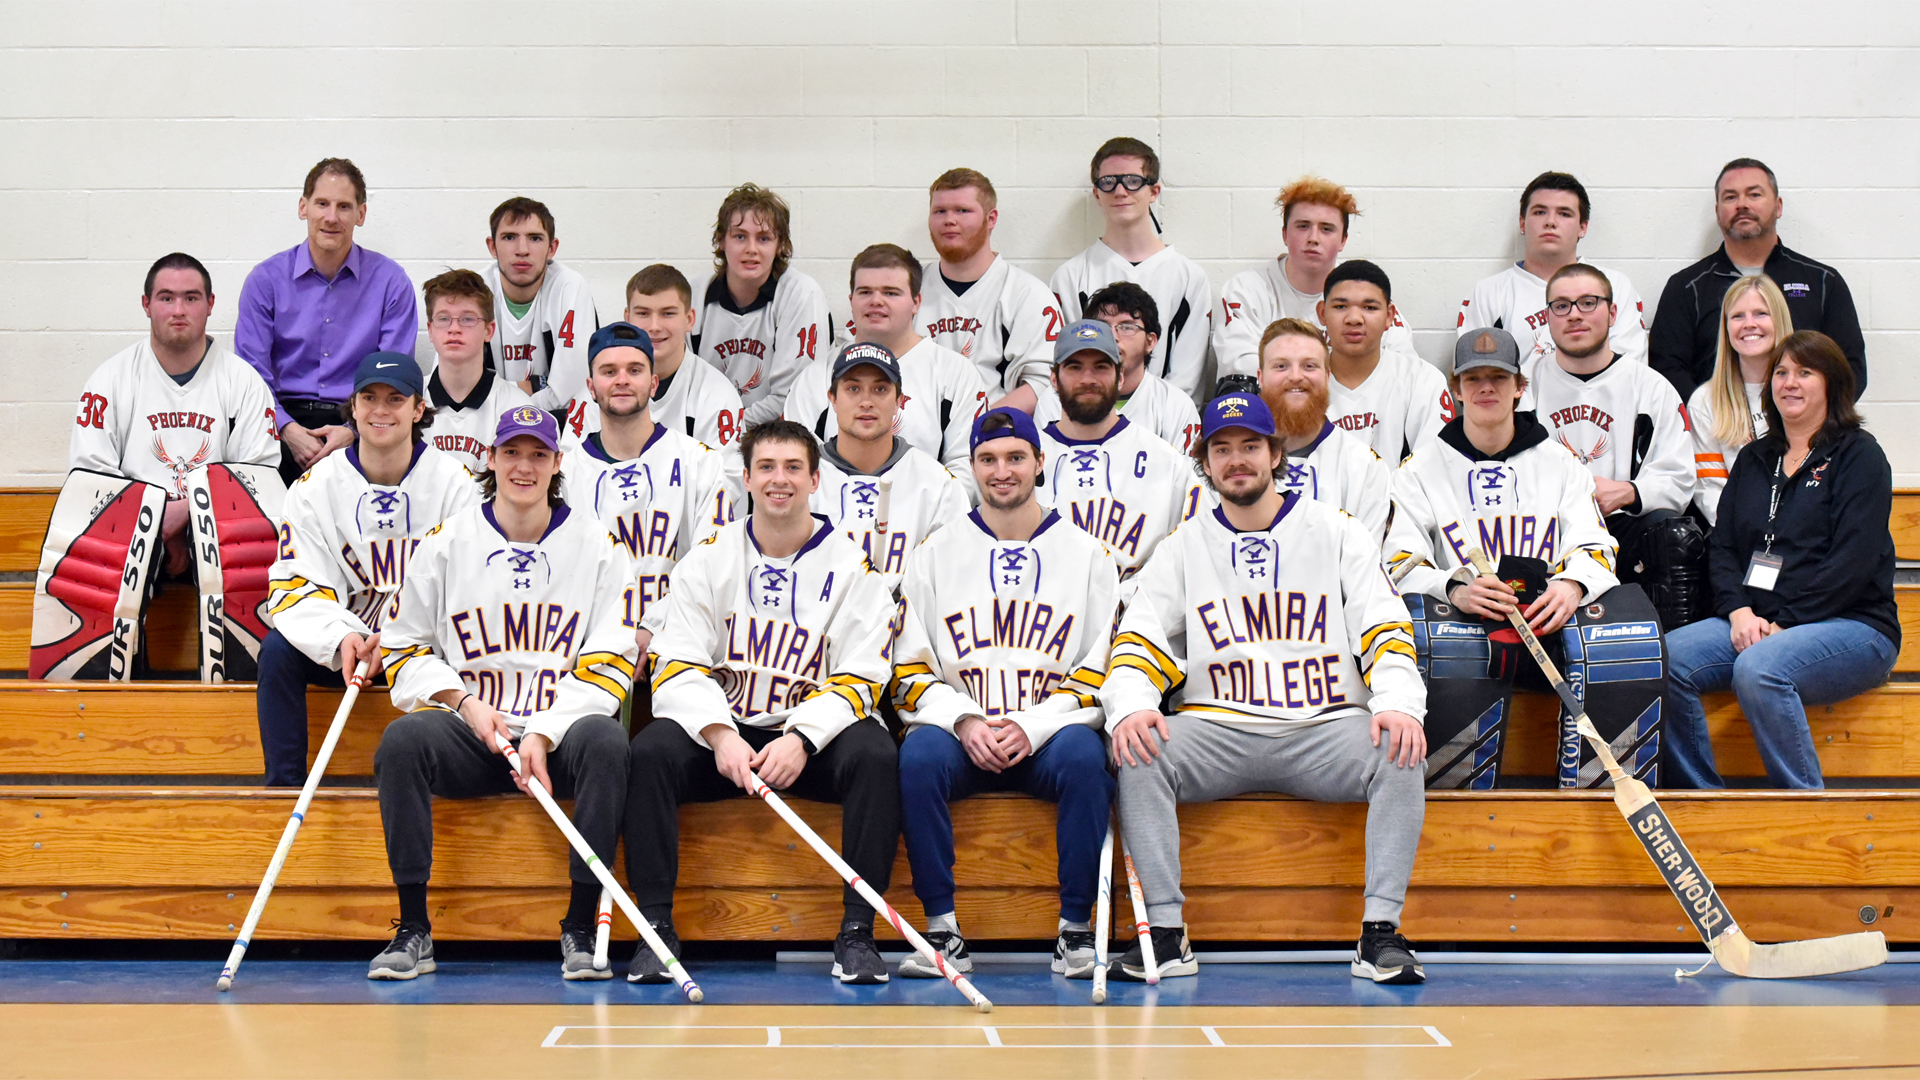 Soaring Eagles Visit Phoenix Academy For Annual Floor Hockey Game Elmira College Athletics